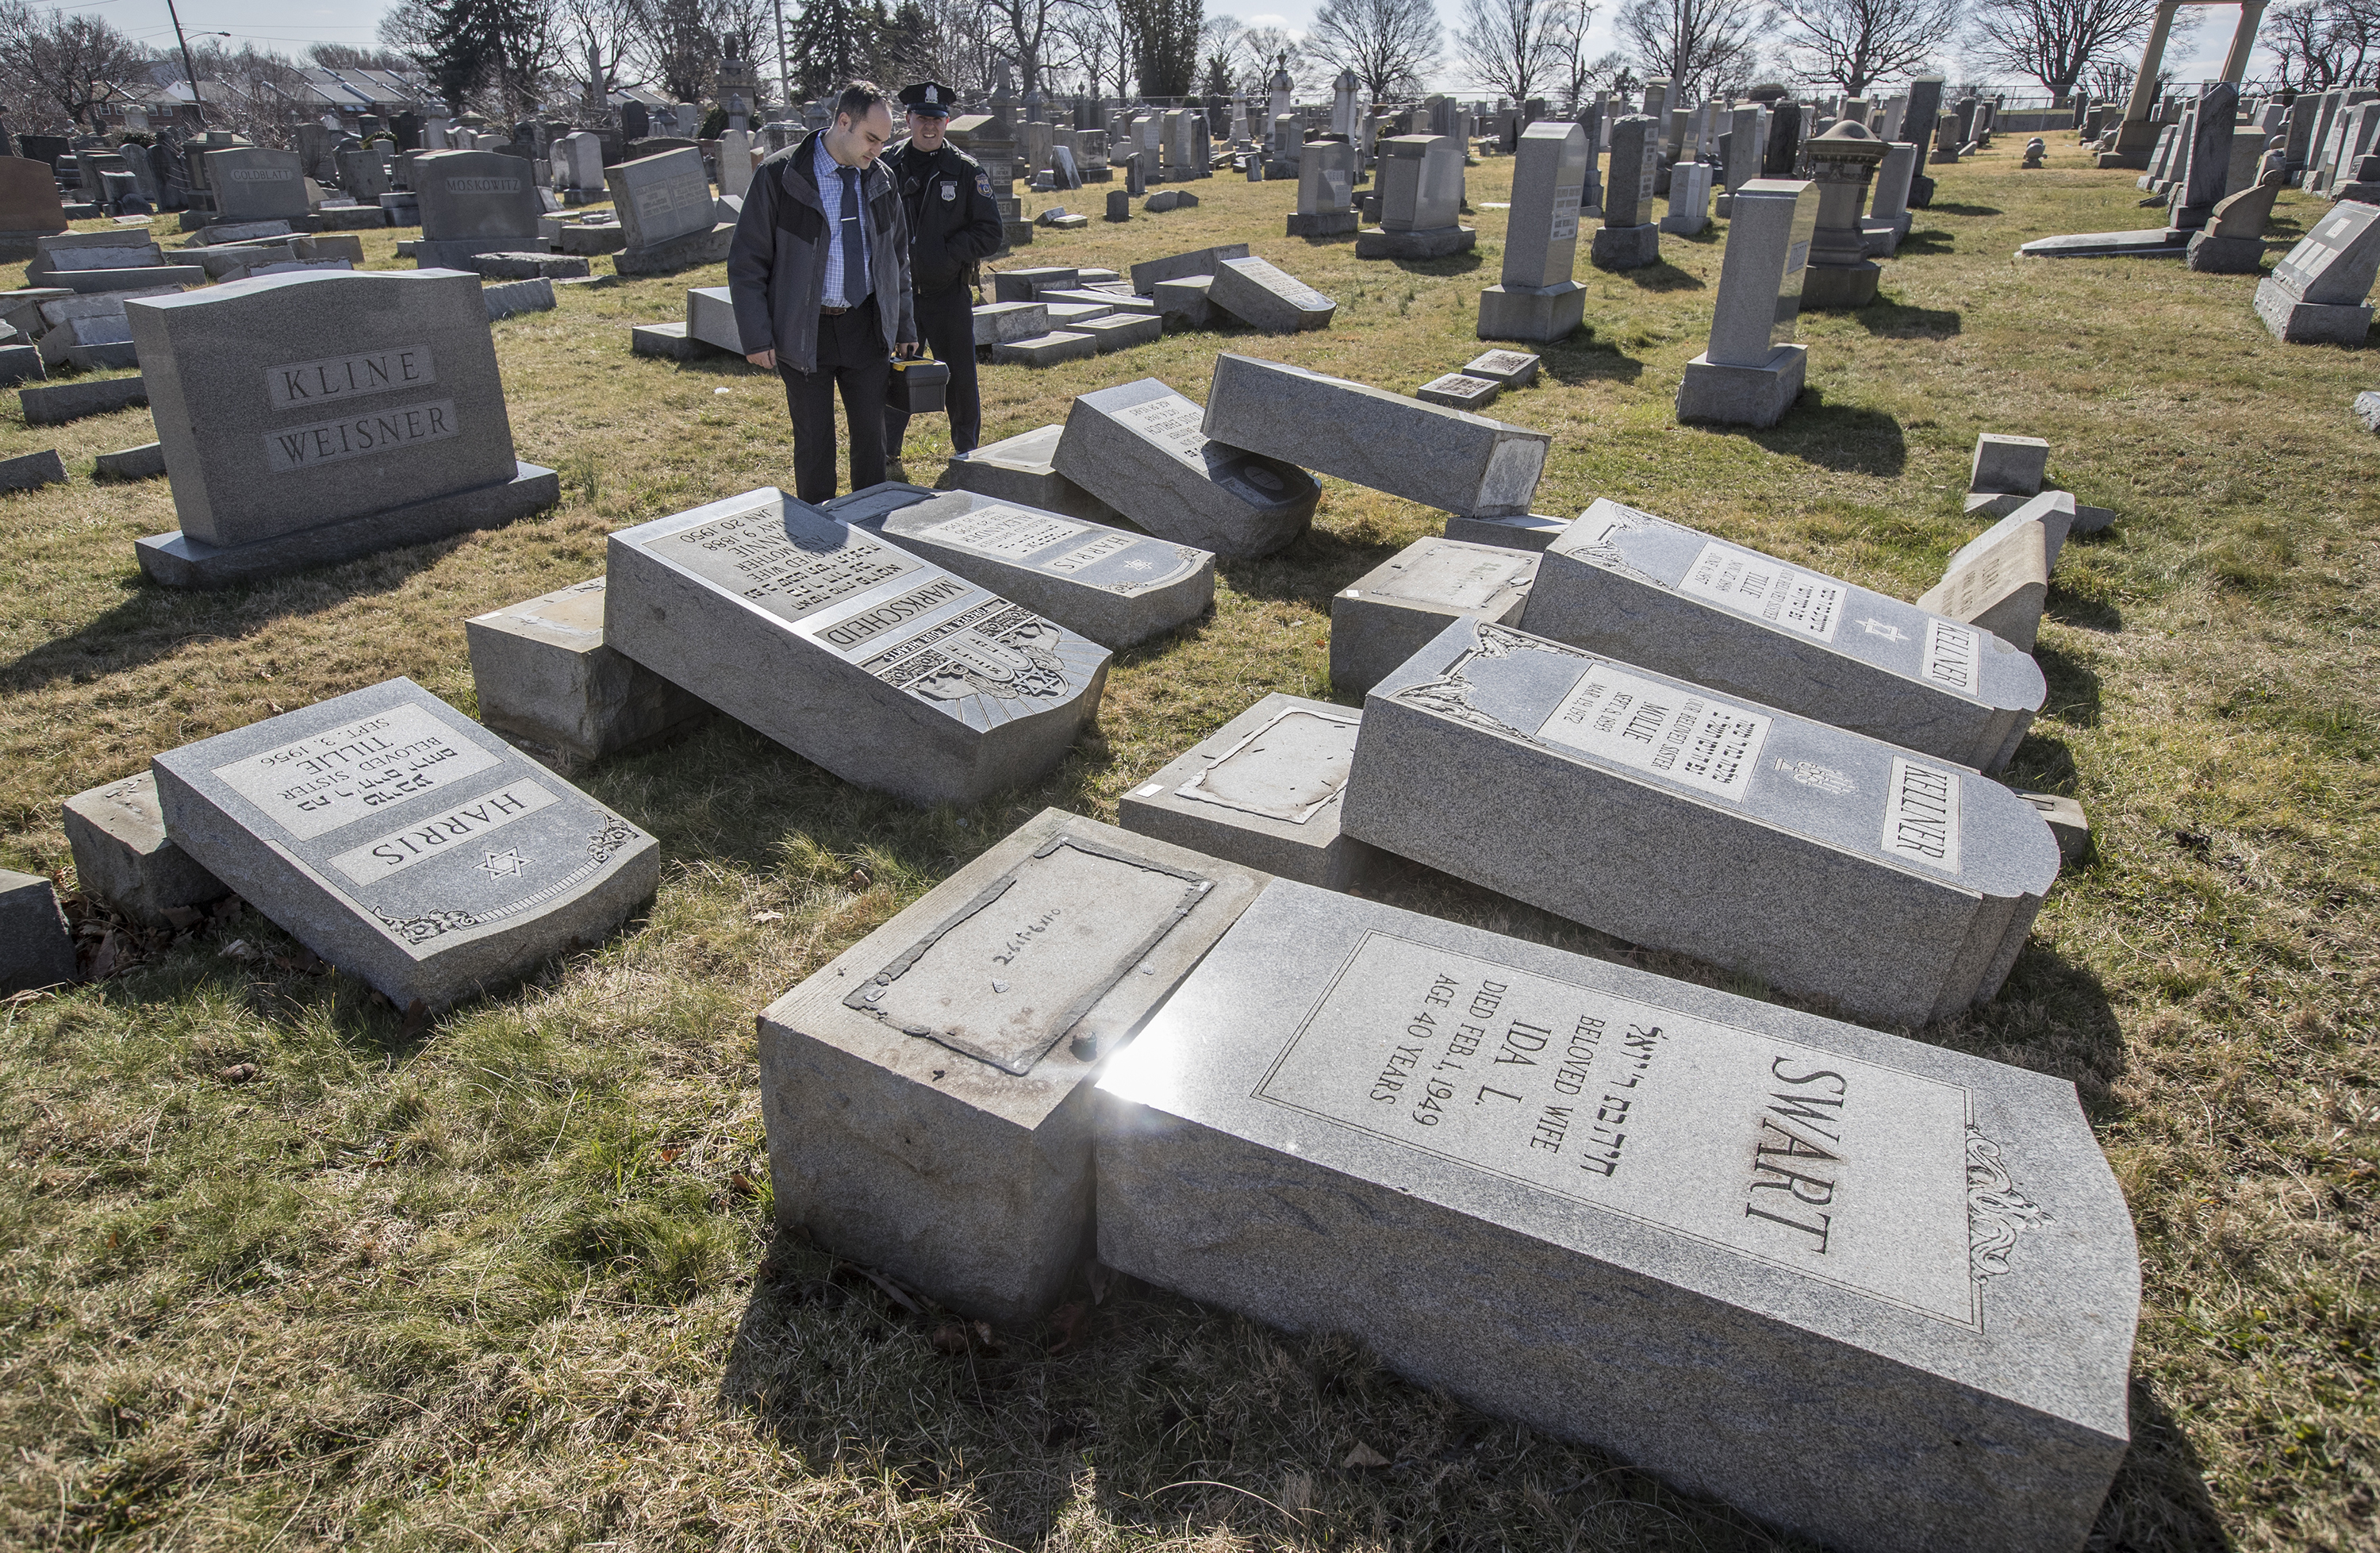 Northeast Philadelphia Police Det. Timothy McIntyre and another Philadelphia police officer look over tombstones that were vandalized in the Jewish Mount Carmel Cemetary Sunday, Feb. 26, 2017 in Philadelphia.